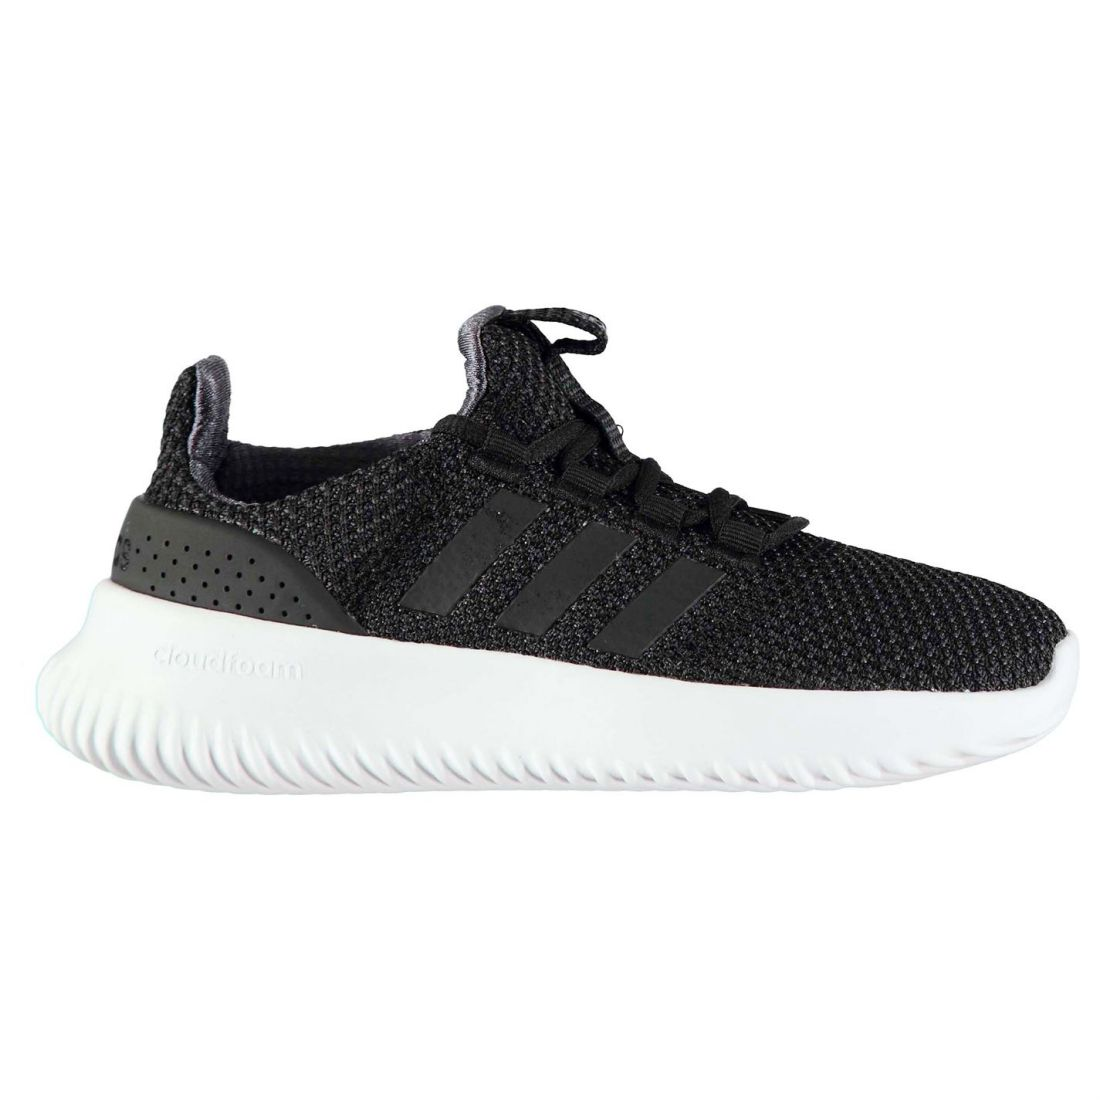 9e53f05dcfef8 adidas Neo Youths Cloudfoam Ultimate Trainers (black) Black 3 for ...